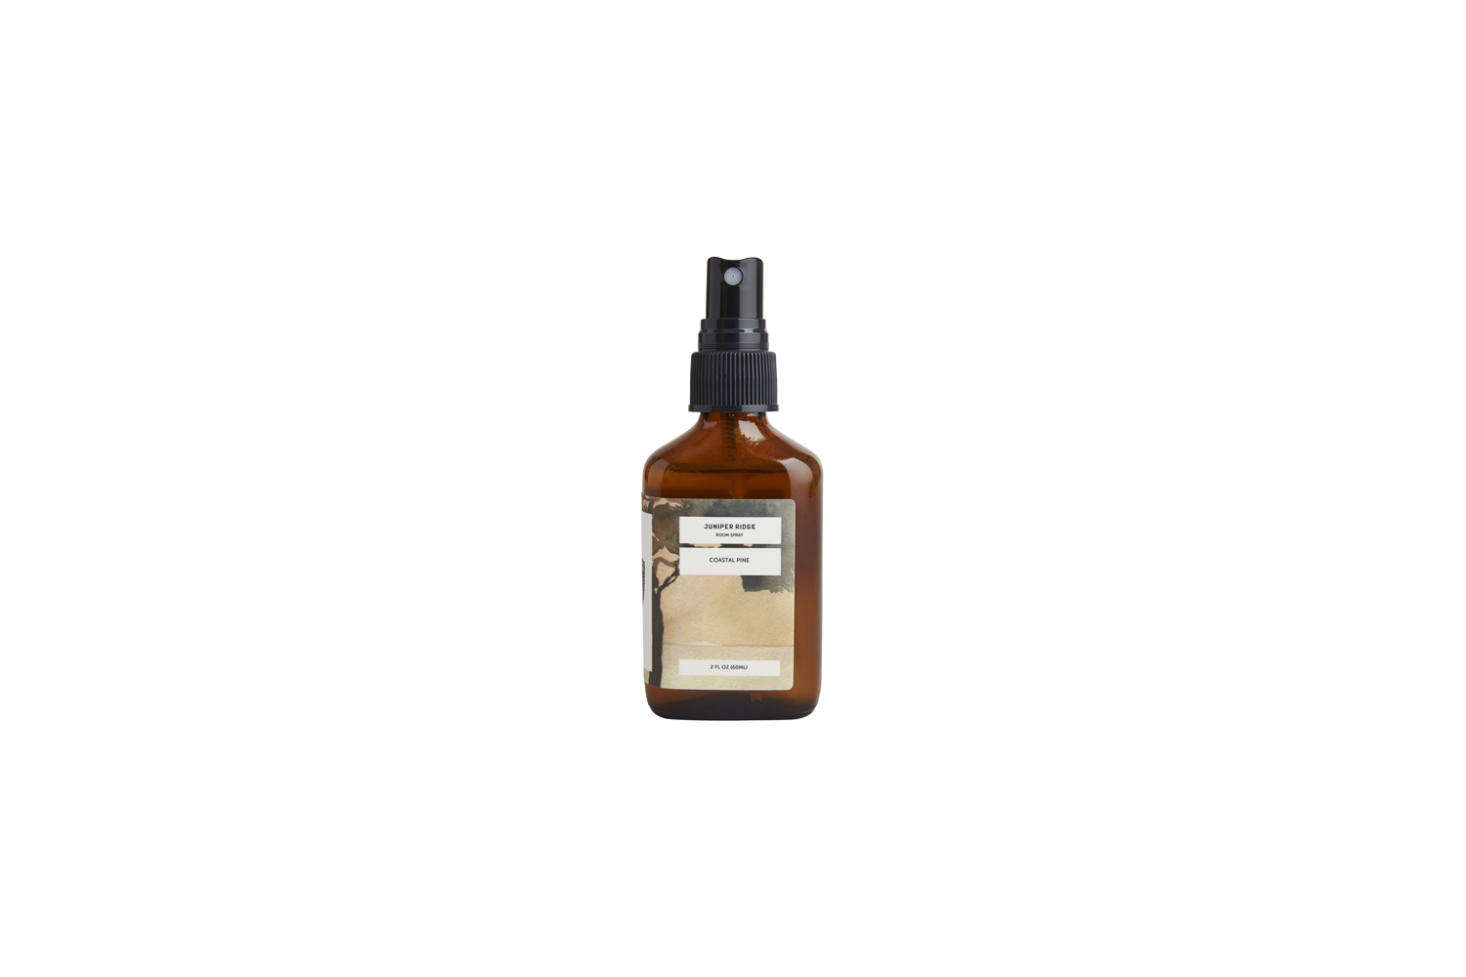 Wildcrafted herbals from Juniper Ridge includes the Coastal Pine Room Spray. A fragrance harnessing the scent of coastal forests of California and Cascadia, the spray is meant to freshen up full rooms or spray directly onto blankets, fabrics, and other linens; $ per bottle at Juniper Ridge.